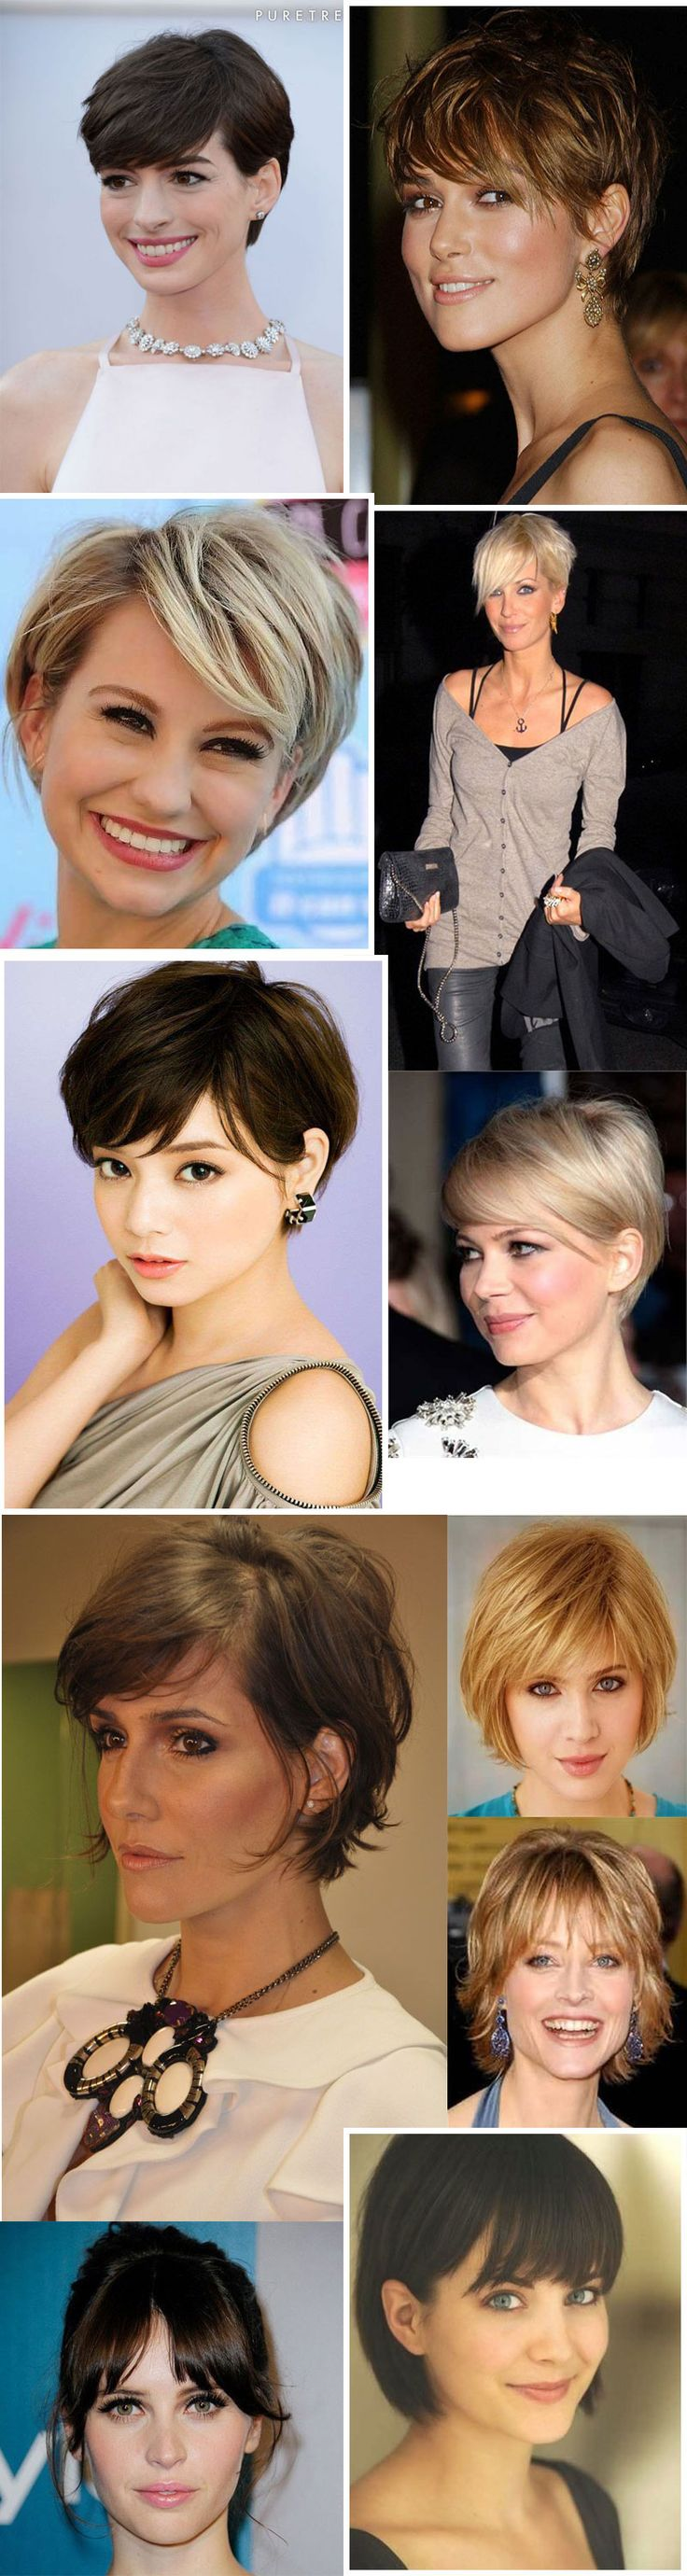 best cabelo curto images on pinterest short hair hairstyles